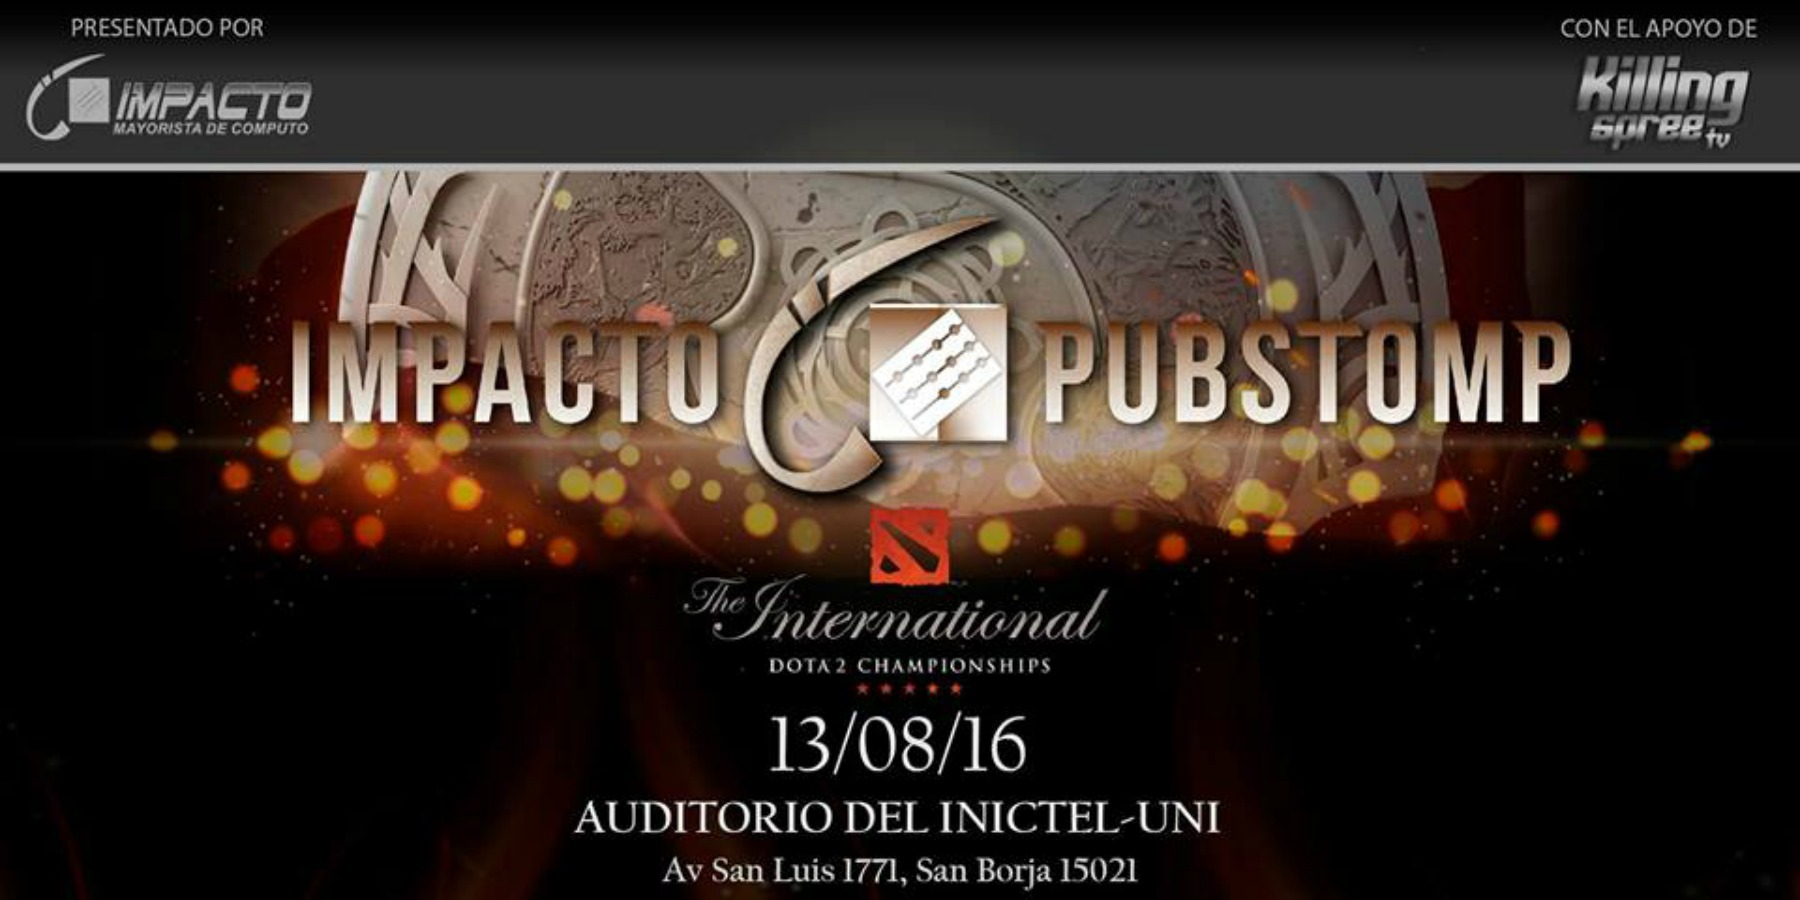 Impacto Pubstomp 2016 | The International de Dota 2